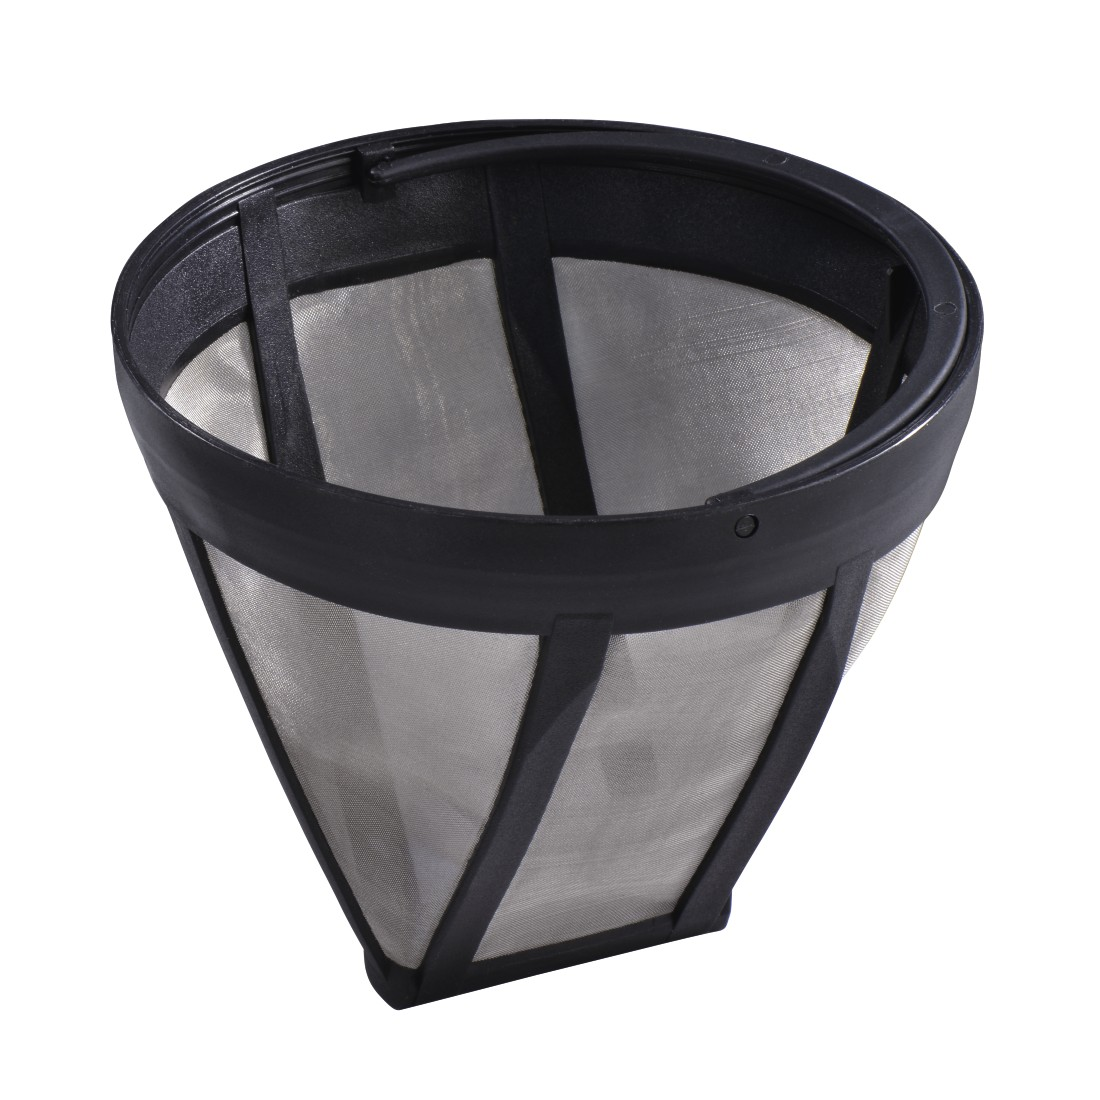 abx2 High-Res Image 2 - Xavax, Permanent filter for coffee maker, replacement for filter size 4